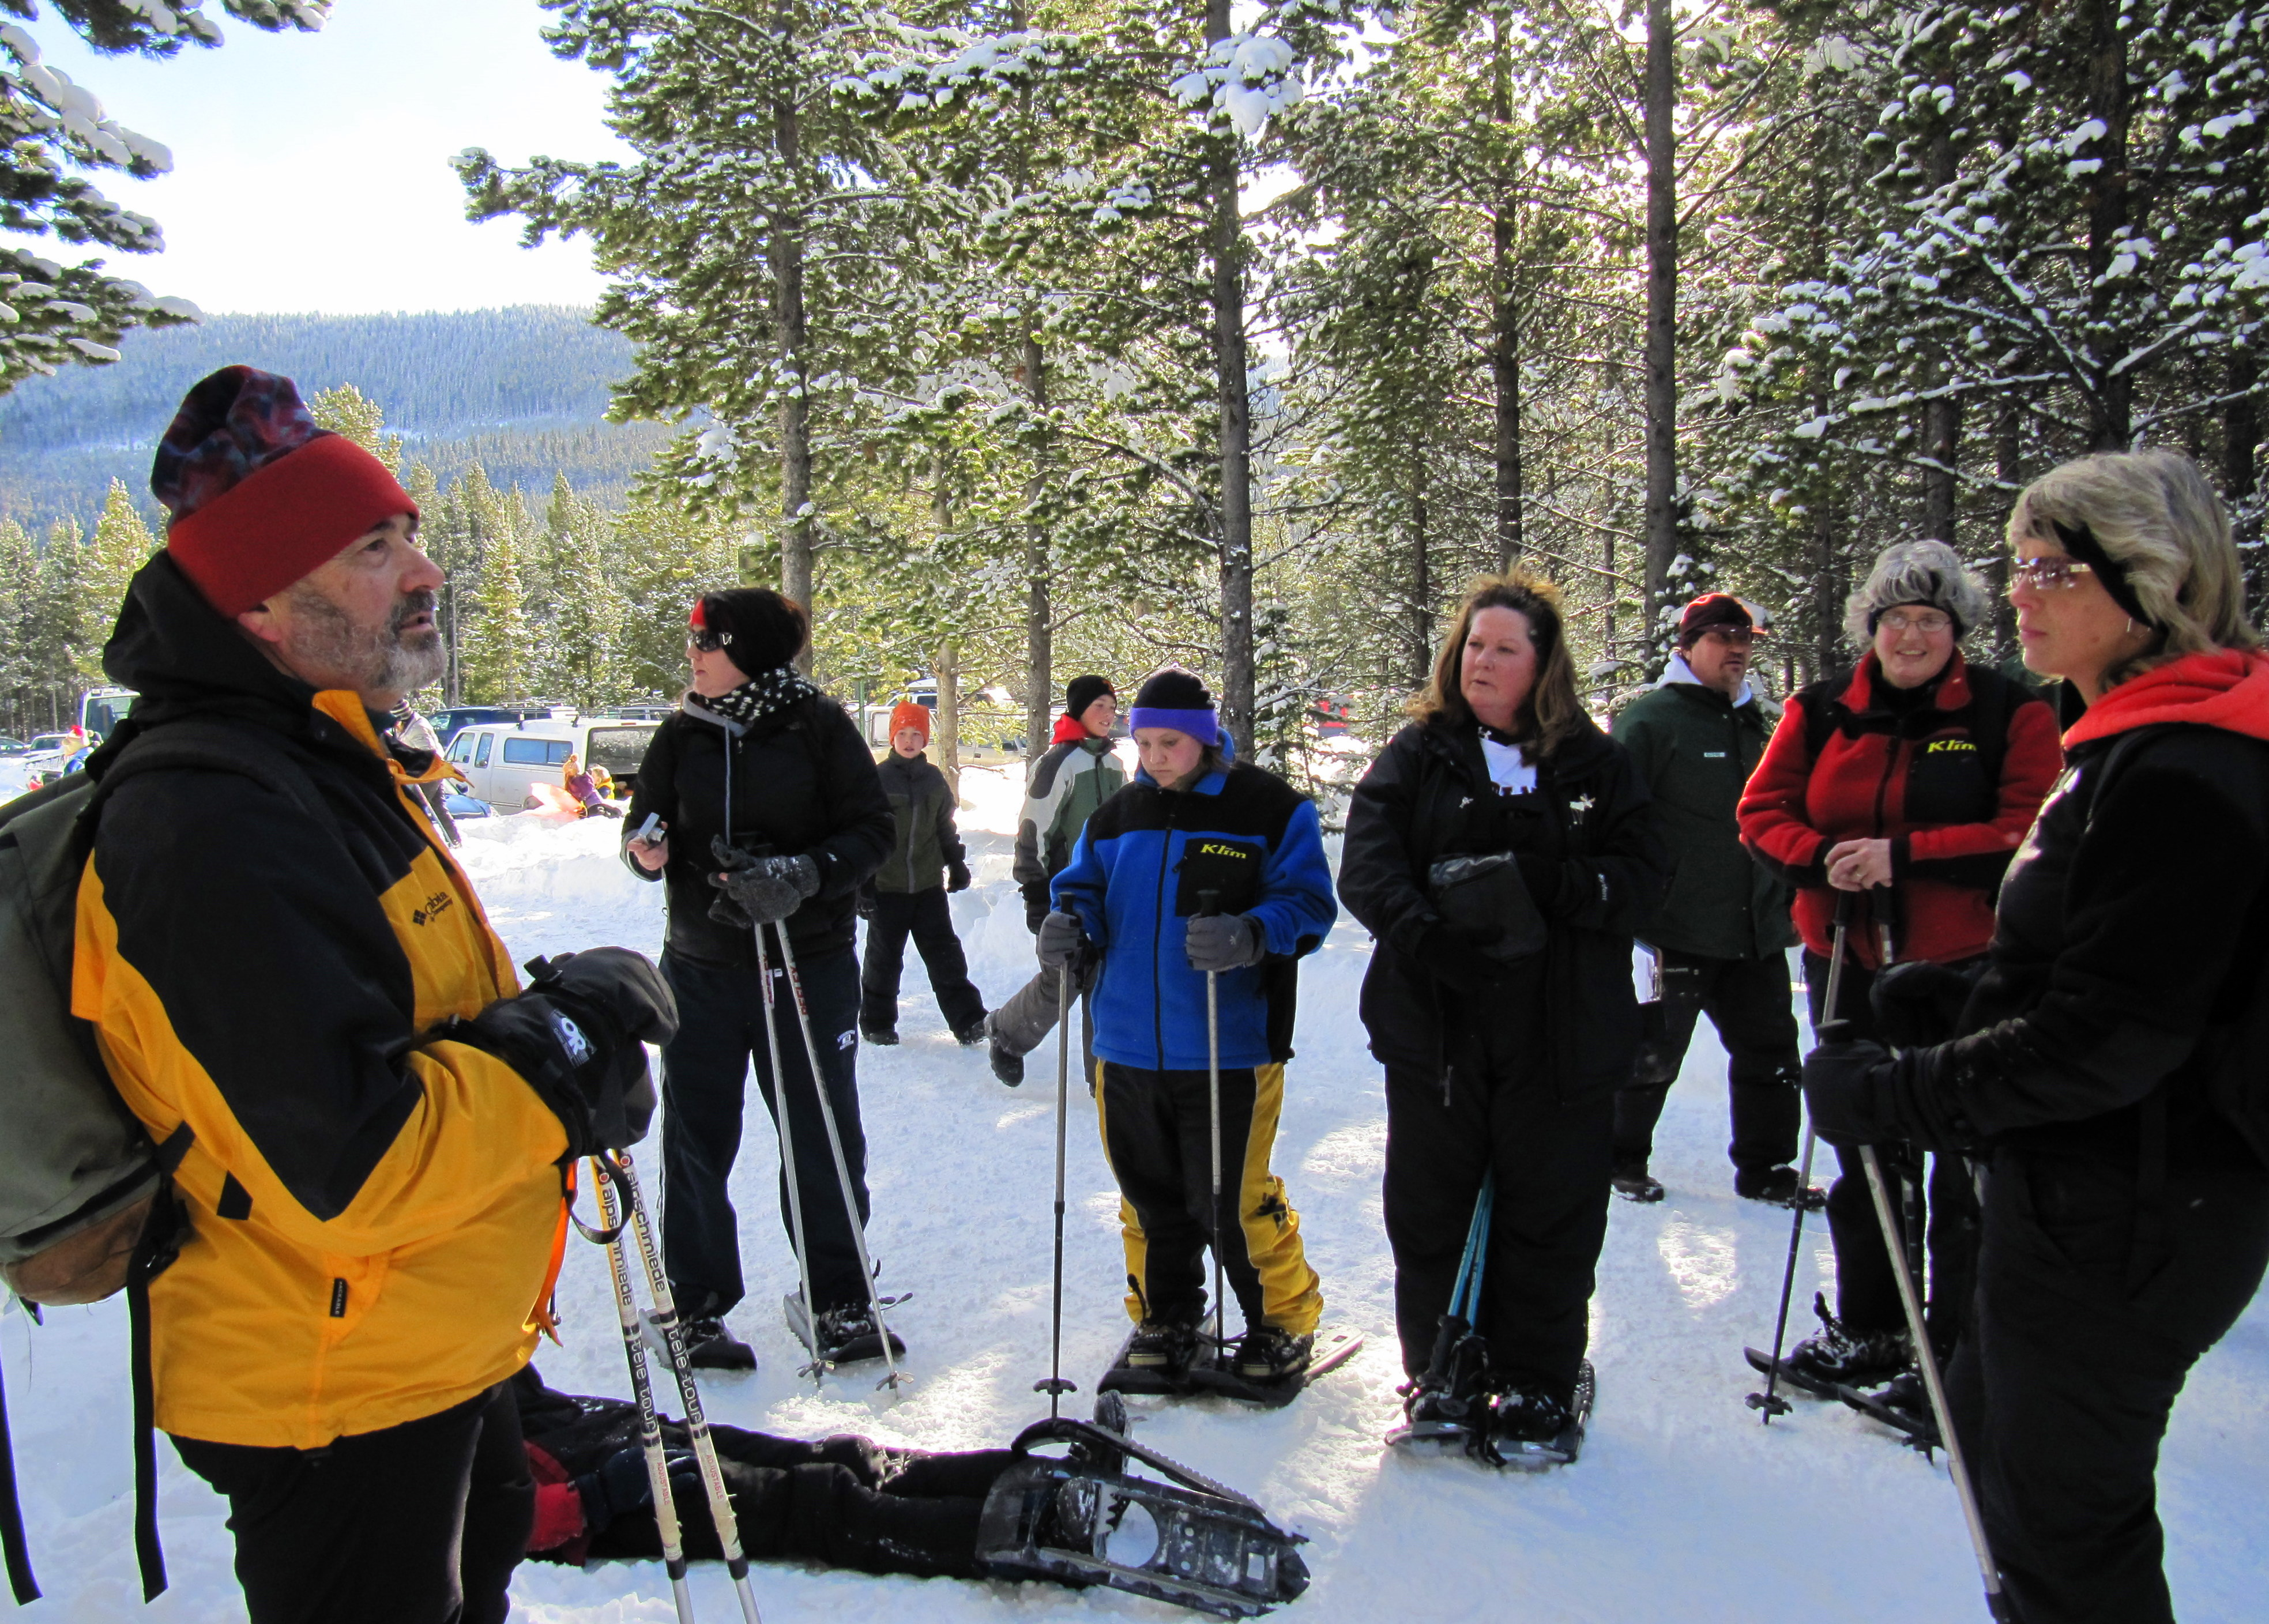 Paul, Guide for the snowshoe hikes, giving rules to a group of snowshoers before a hike.